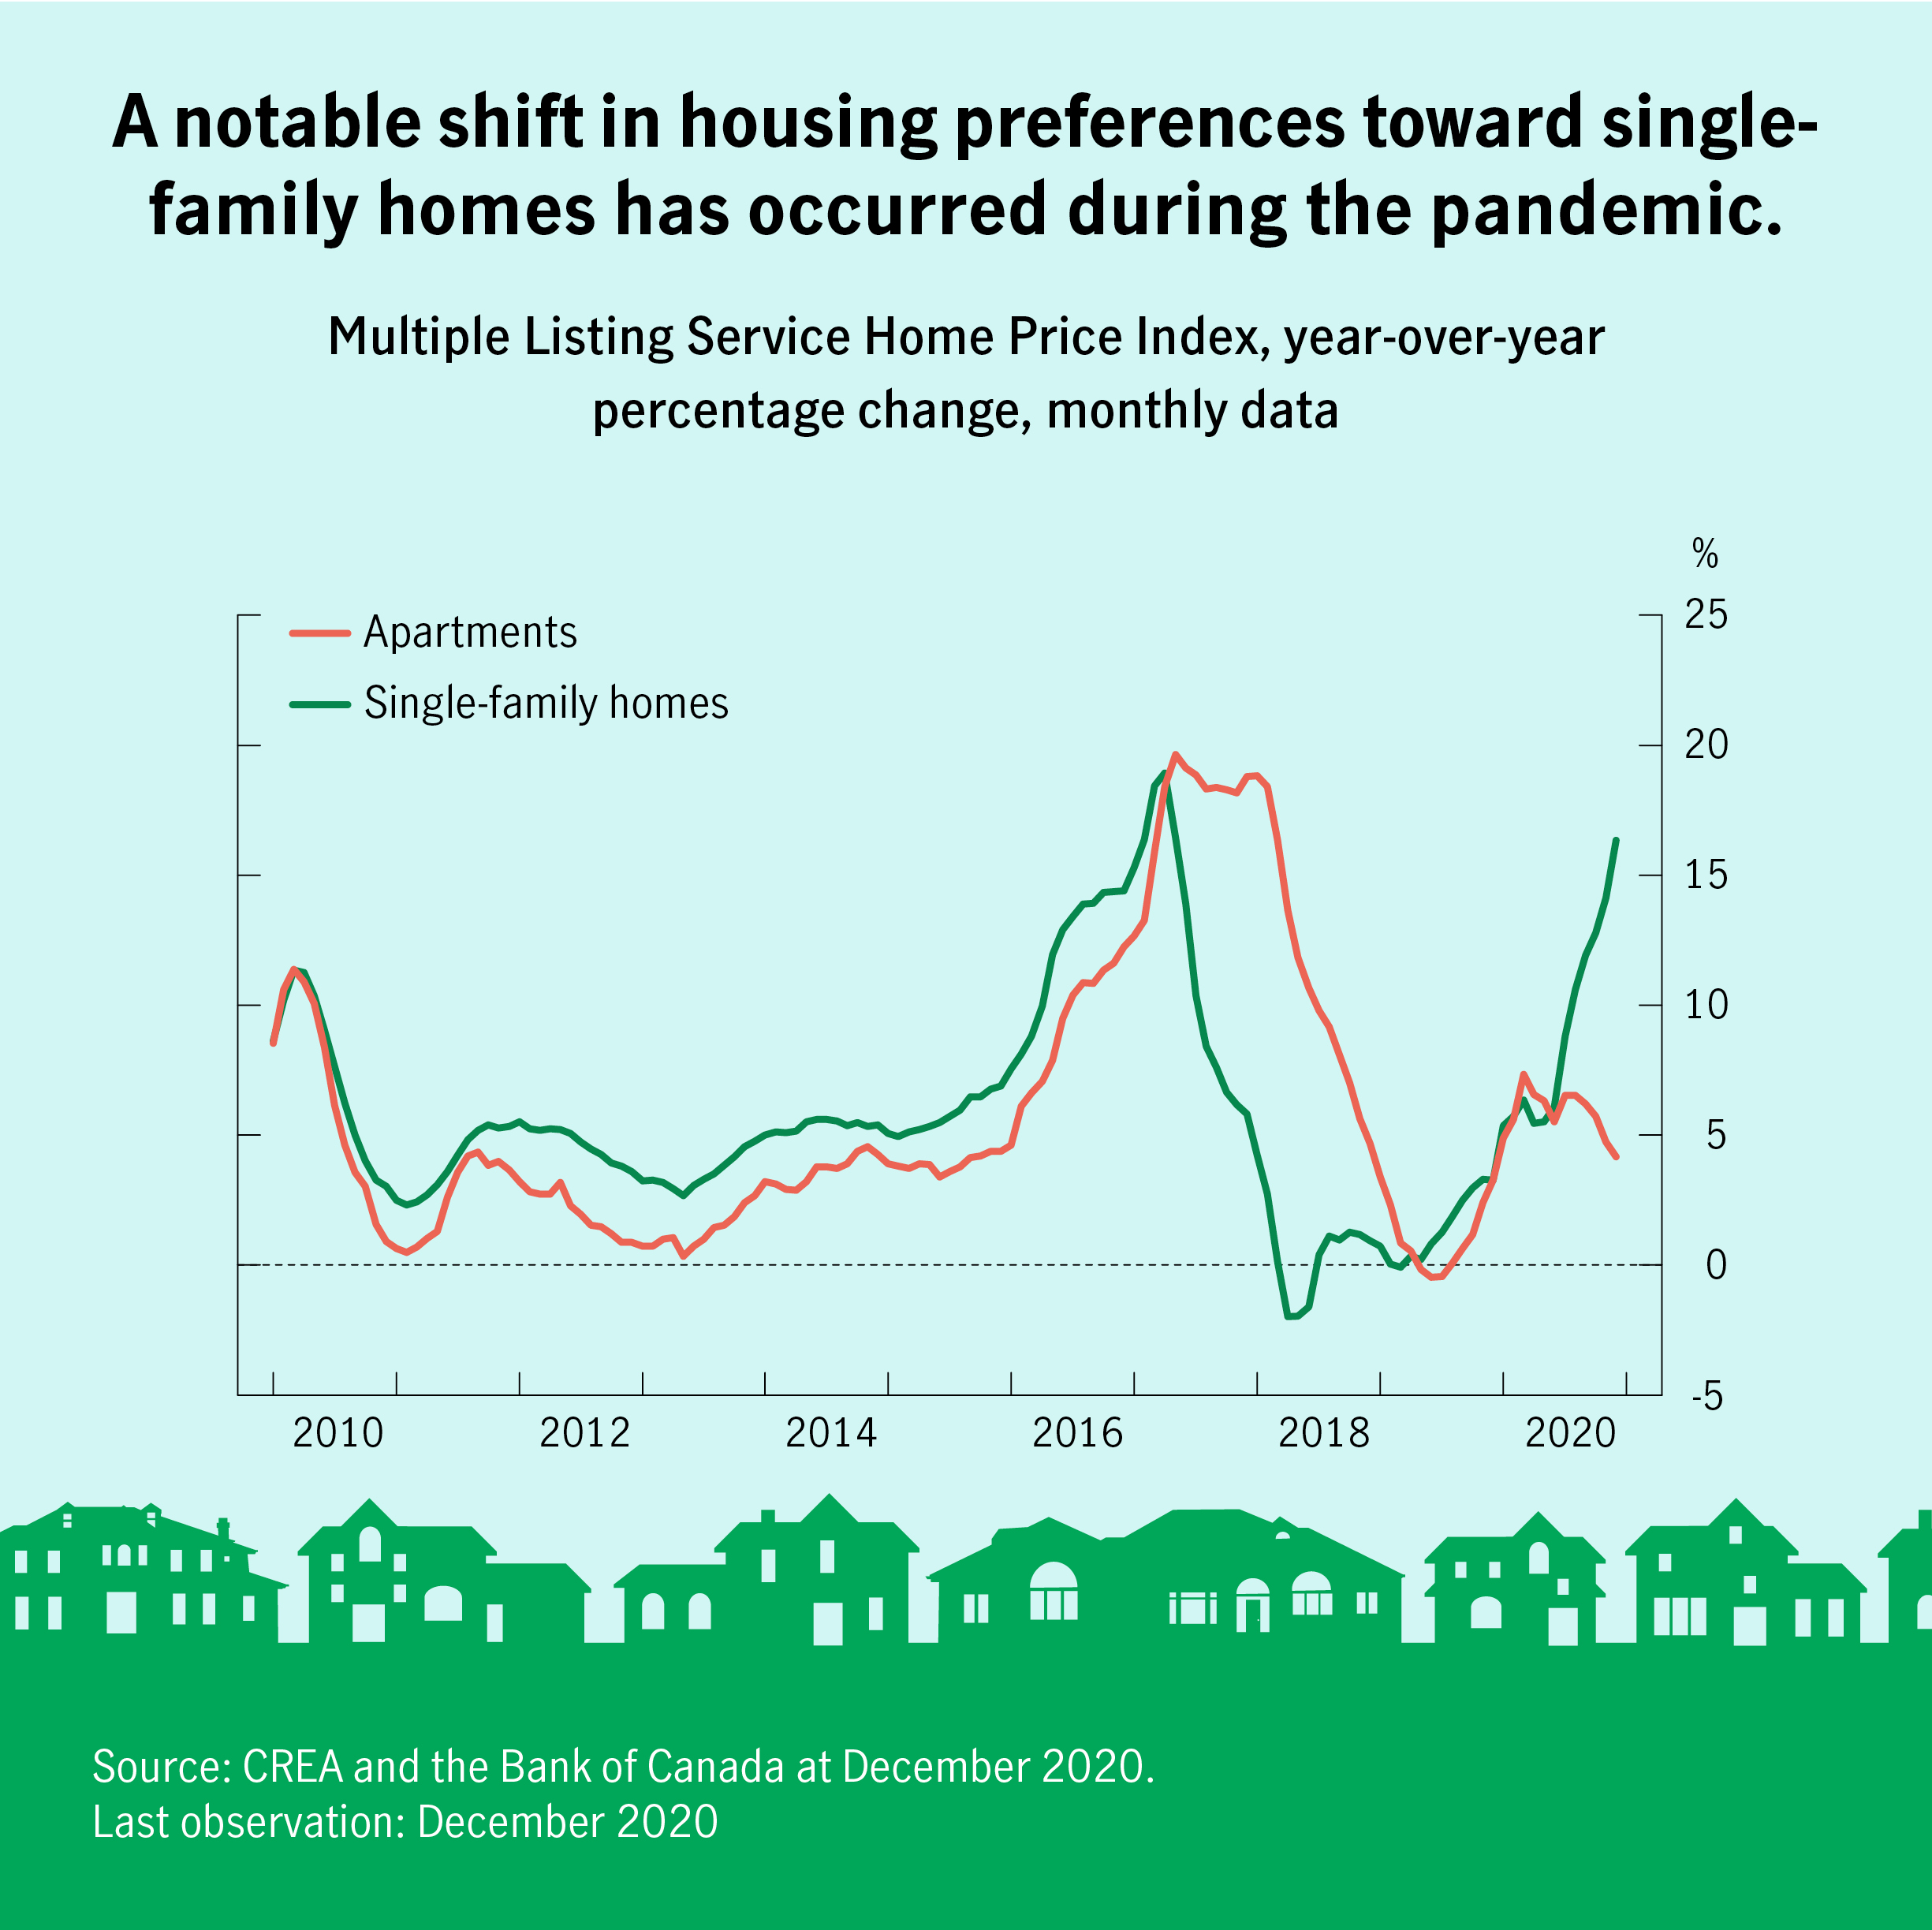 A notable shift in housing preferences toward single family homes has occurred during the pandemic. Multiple Listing Service Home Price Index, year-over-year percentage change, monthly data shows that sales of single family home is above 15 % as of December 2020, whereas apartments are below 5 %. Source CREA and the Bank of Canada as at December 2020. Last observation December 2020.